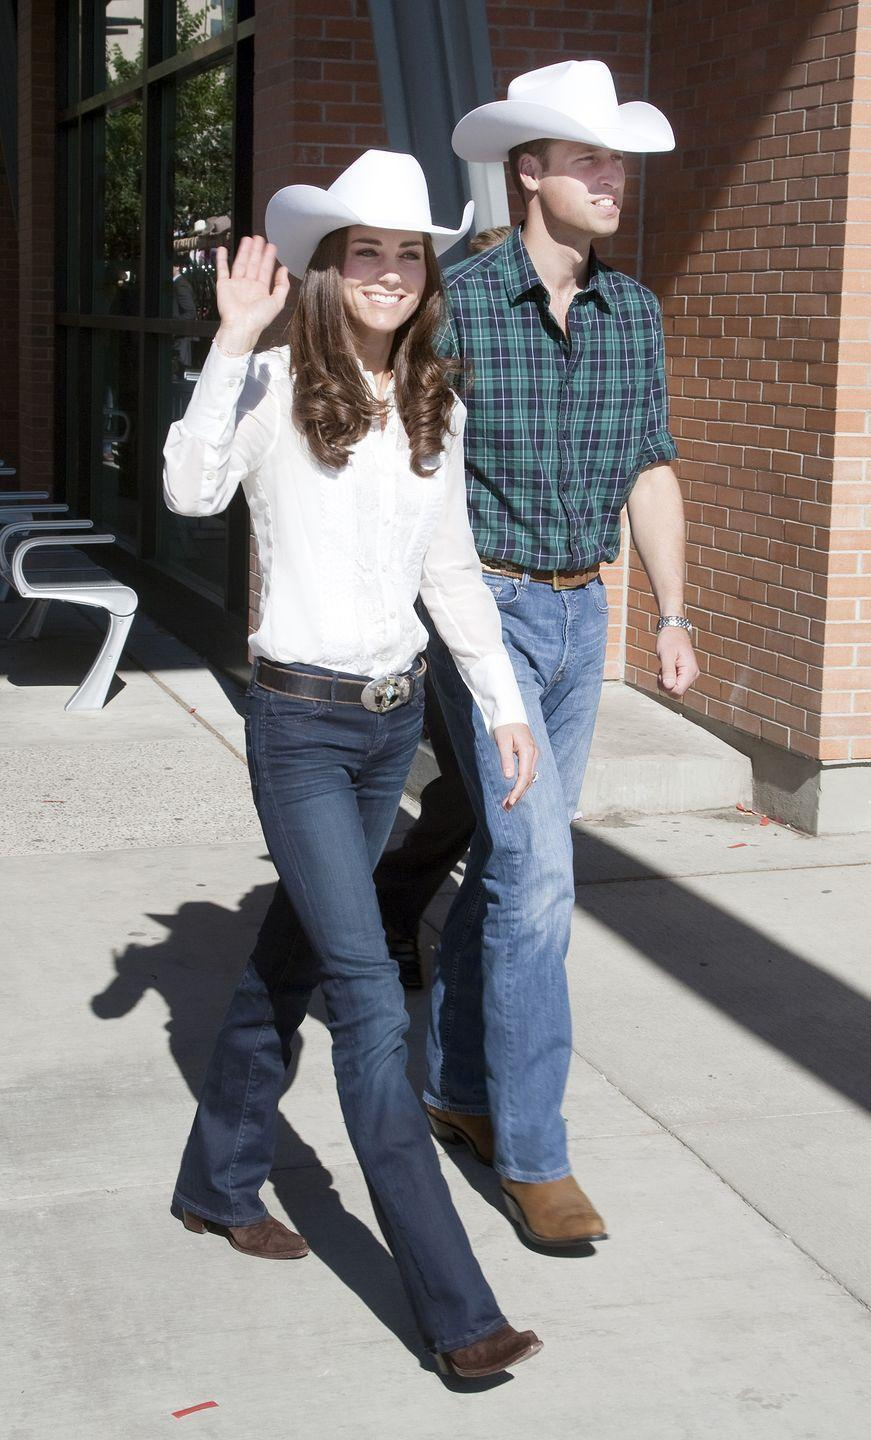 <p>Okay, yes, the cowboy look is totally unexpected (especially for these two) but also totally perfect in every way. The dark blue flare jeans! The white Oxford shirts! The boots! I mean, Will and Kate wore literal <em>cowboy hats</em> during their 2011 trip to Canada.</p>